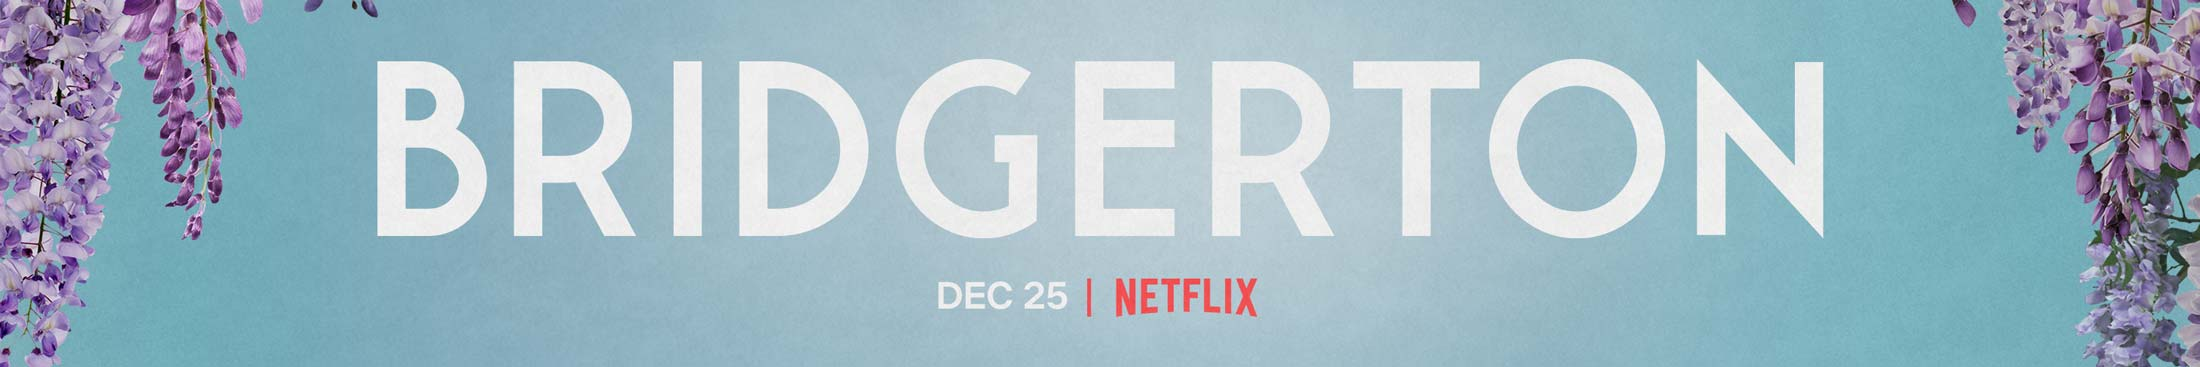 Bridgerton, December 25 on Netflix